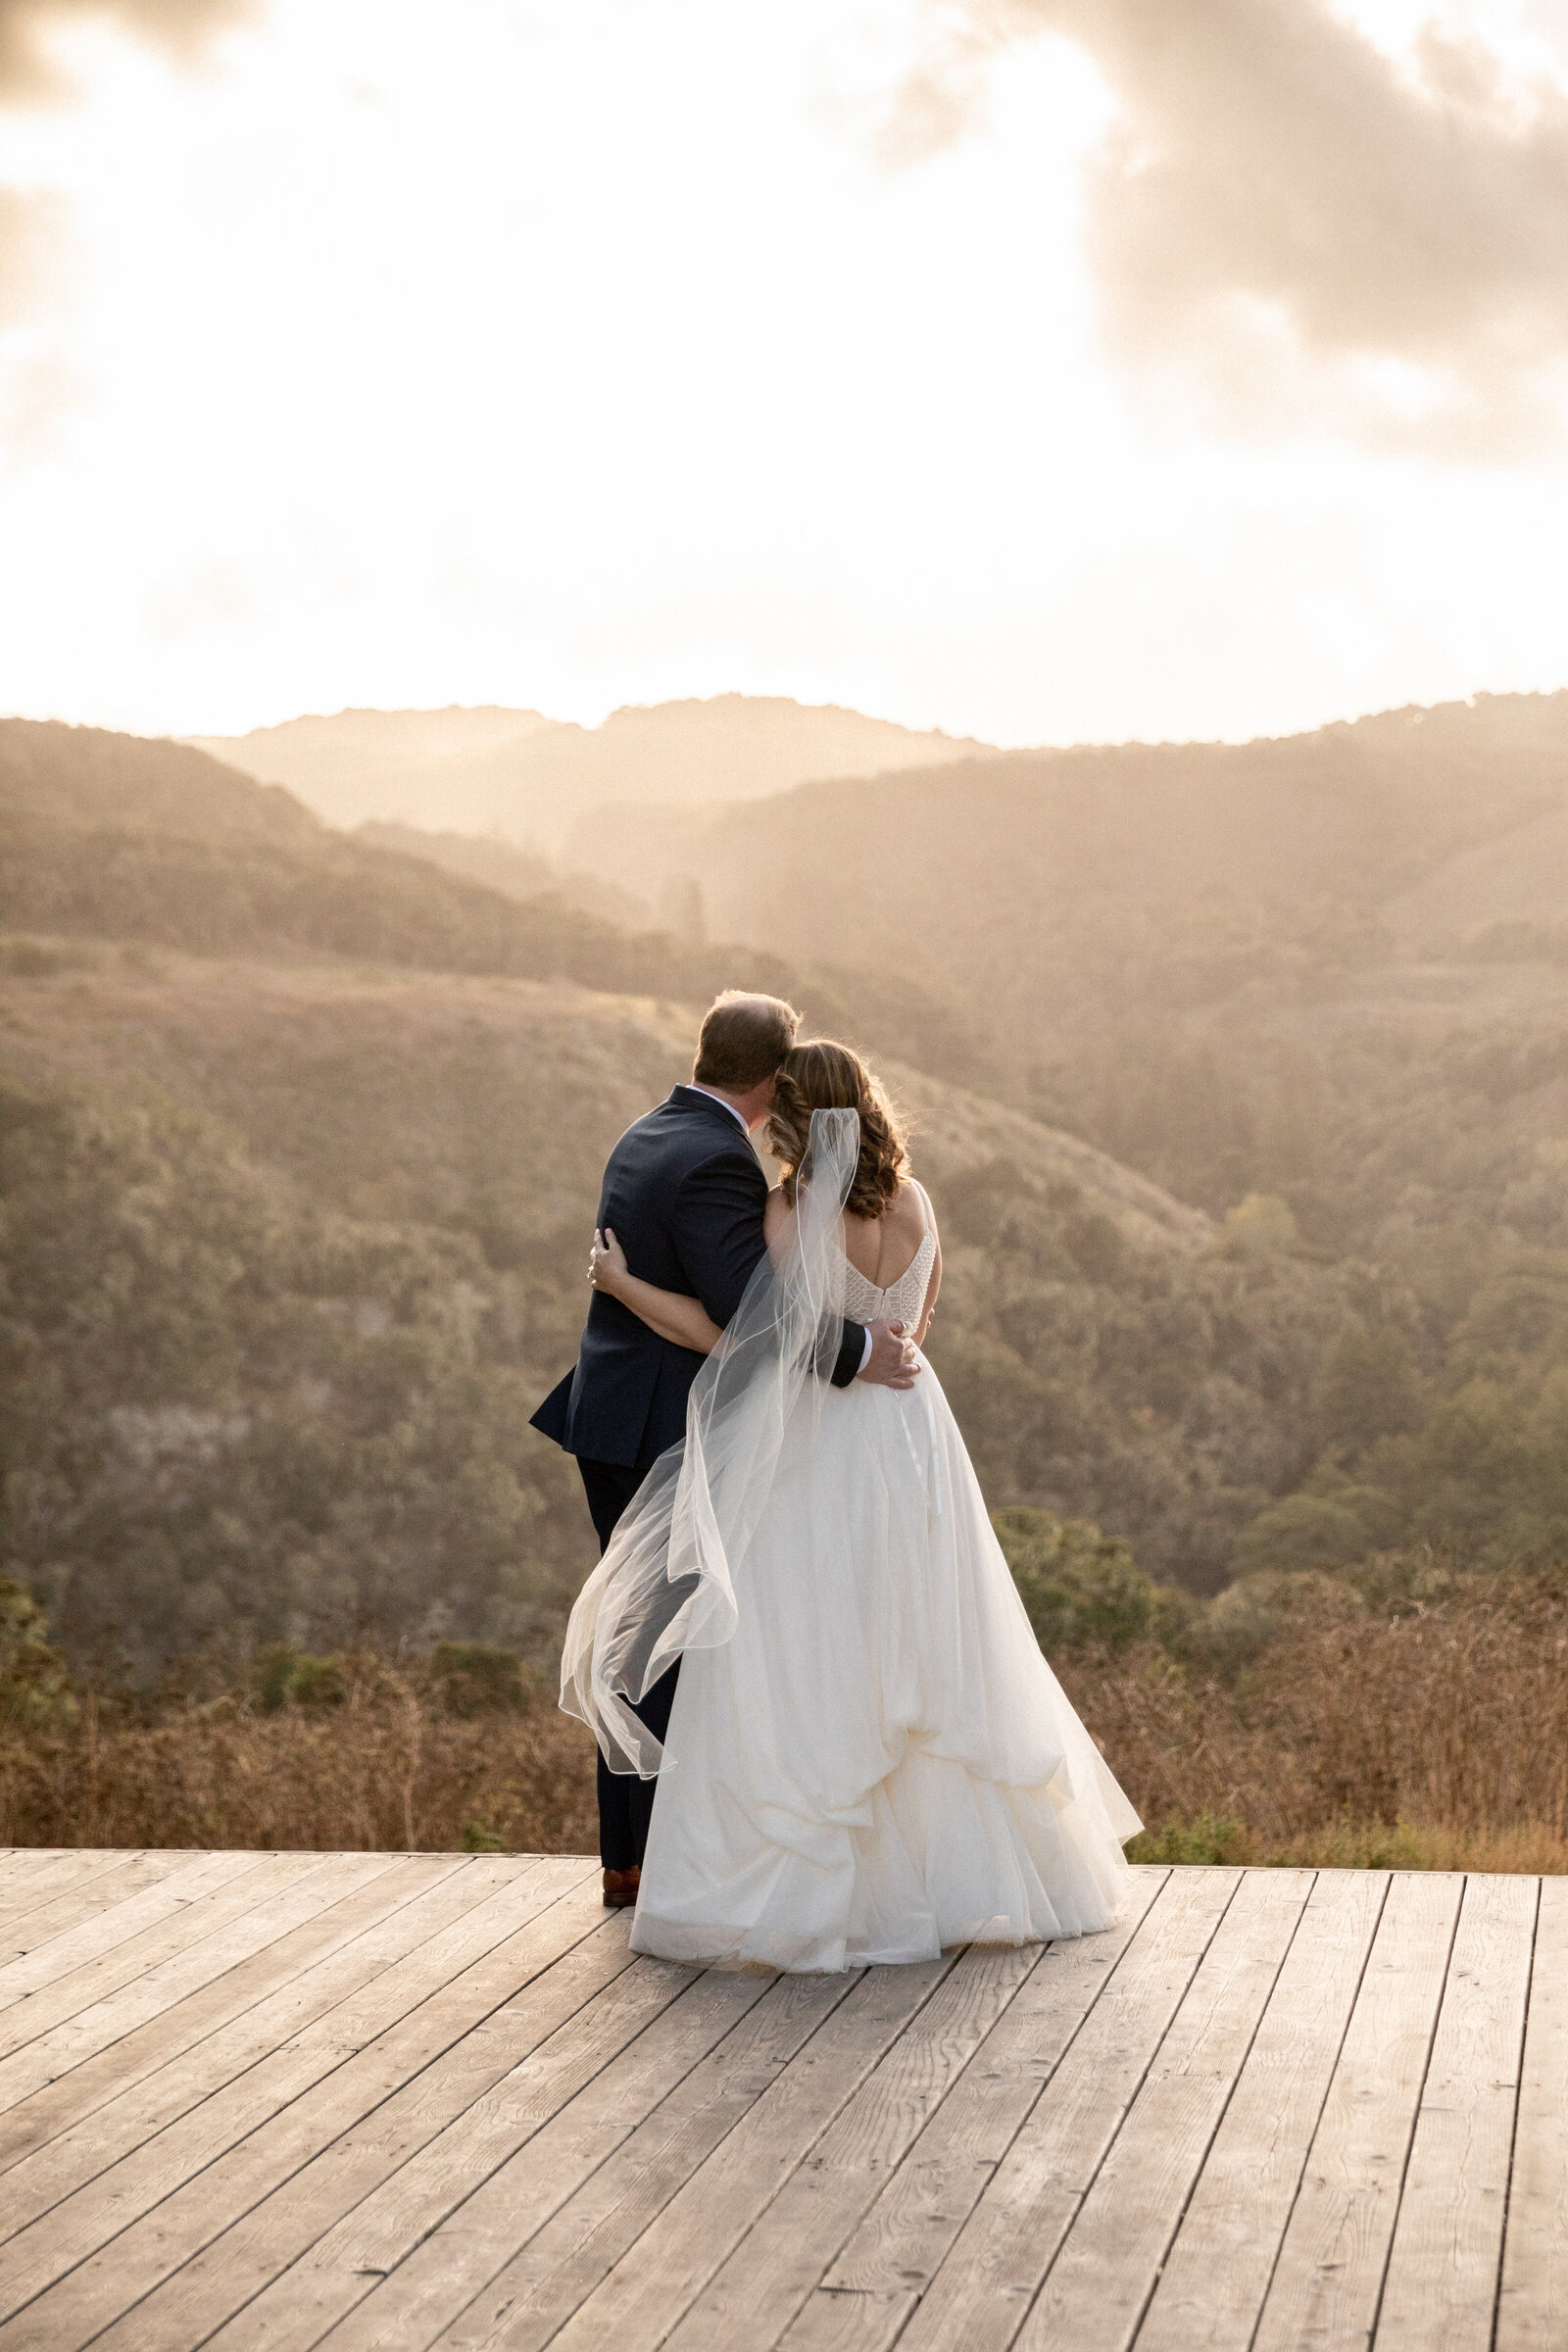 larissa-cleveland-elope-eleopement-intimate-wedding-photographer-san-francisco-napa-carmel-076